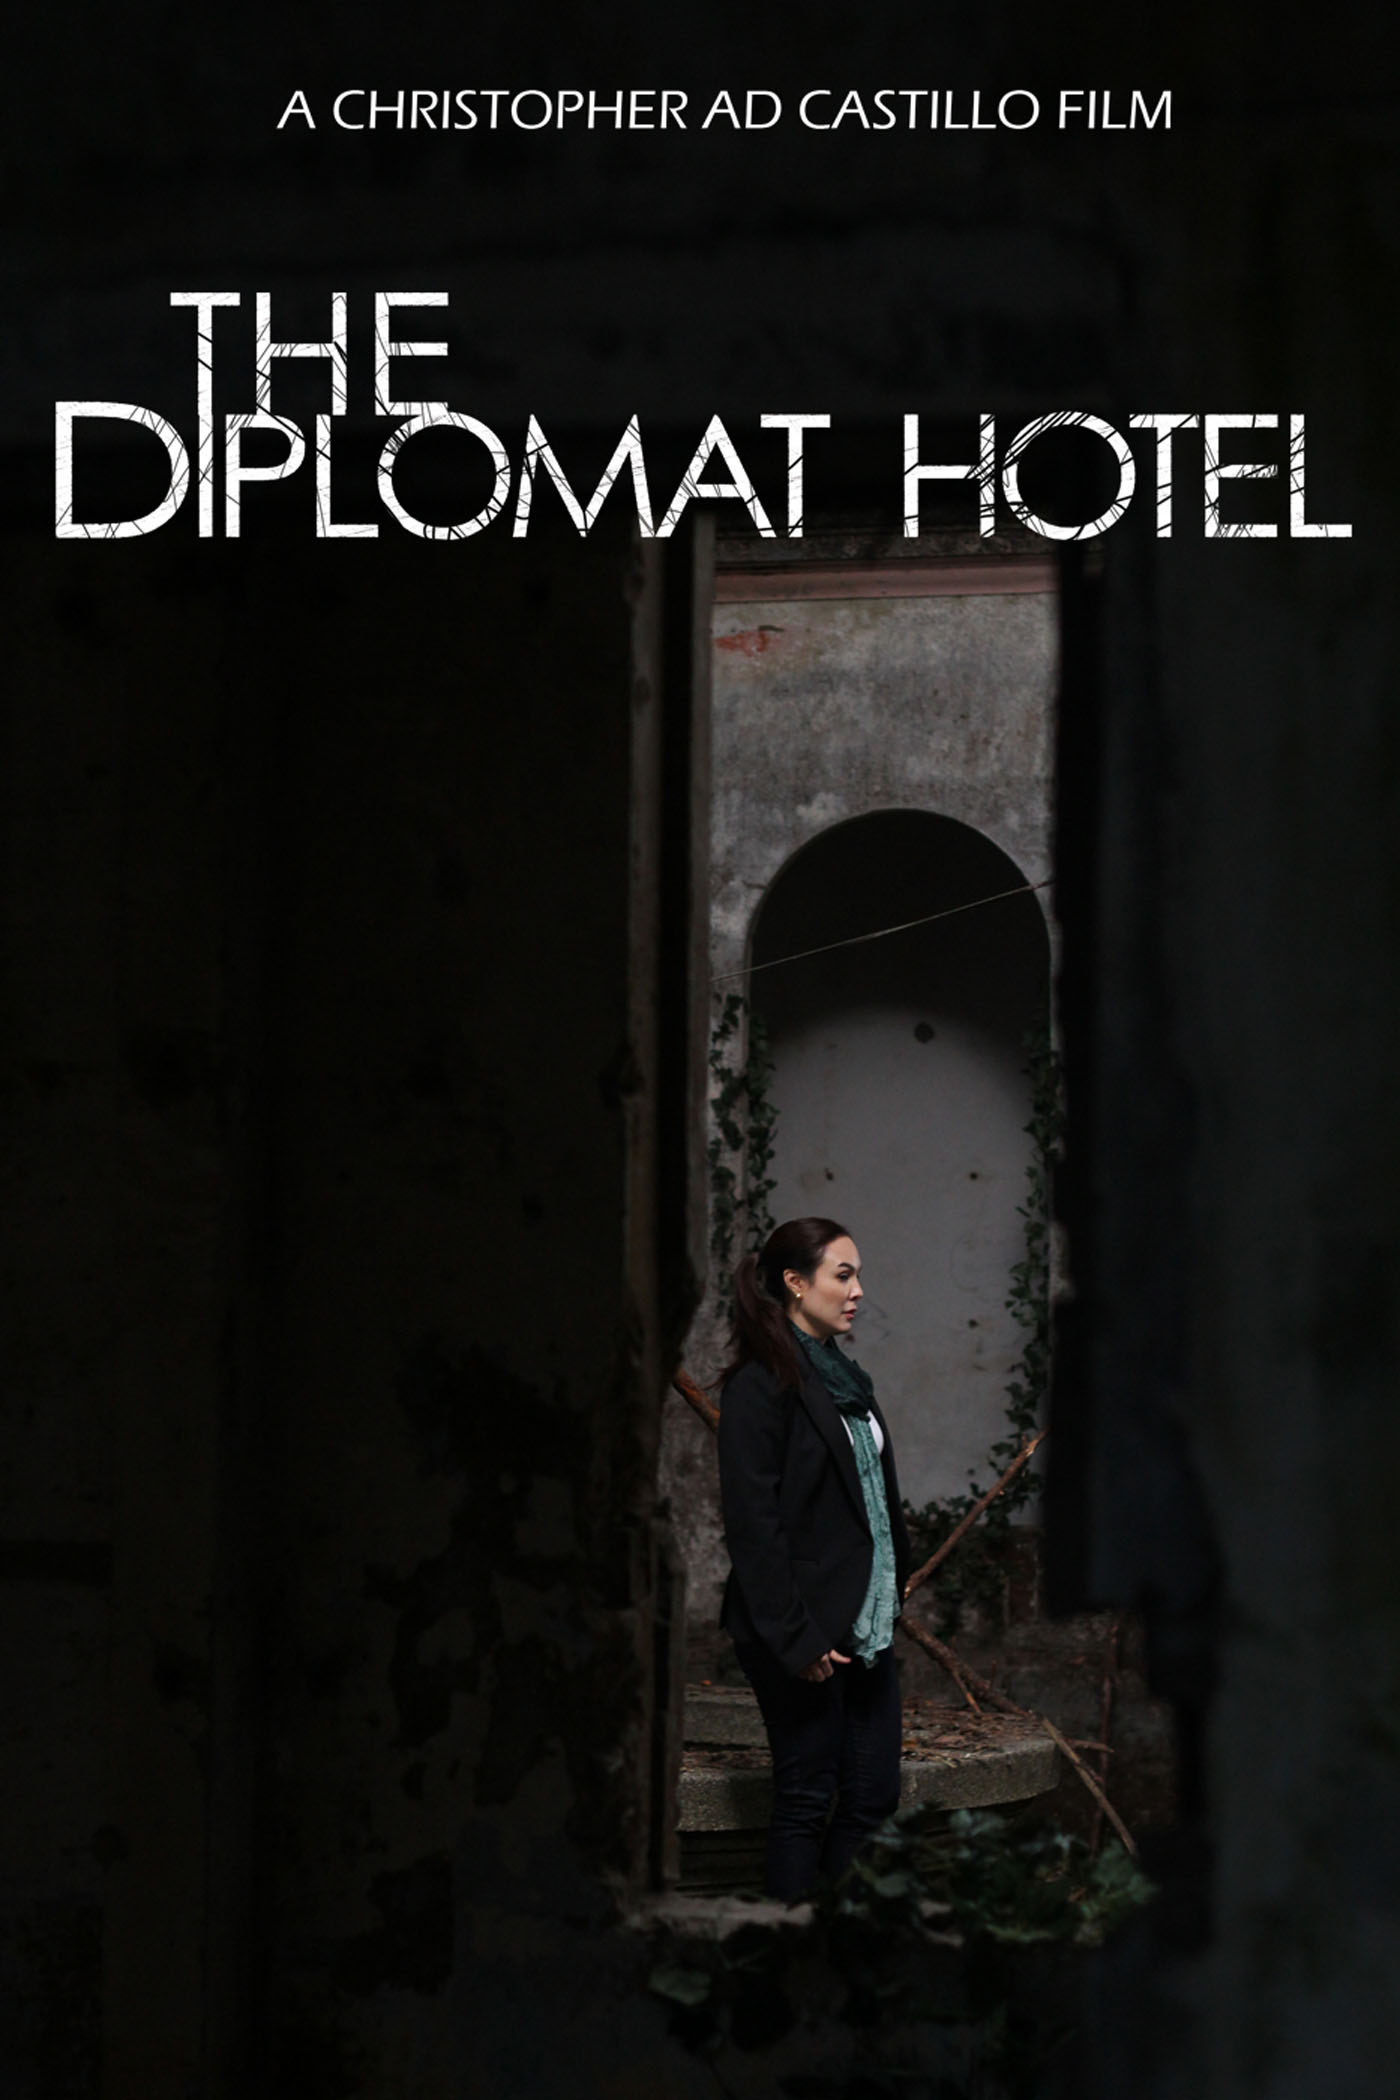 The Diplomat Hotel Film   Victoria Lansang is a popular news reporter who has been requested to mediate a hostage crisis. And in front of a national television audience, something horribly goes wrong and people are killed while Victoria suffers a mental breakdown. A year later, she's eager to get back into the game. However, the only assignment she can get is to do a documentary on the last night of The Diplomat Hotel in Baguio City, a crumbling and abandoned building infamously known for its bloody past and its hauntings. Looking for redemption, she arrives there with her crew and they start filming. But as they get deeper into the night, the place starts to exert its will on them and they find out exactly what monstrous evil awaits at The Diplomat Hotel.  By daybreak, their lives will never be the same again.  DIRECTED BY:   Christopher Ad Castillo  MAIN CAST:   Gretchen Barretto, Art Acuña, Mon Confiado, Joel Torre, Nico Antonio, Sarah Gaugler (TURBO GOTH), Channel Delatorre, Brooke Chantelle, Abe Pagtama, Alvin Anson, Luchie Maranan, Carl Alexander Acosta, Karen Navarette Anton, Miel Riley Ribon, Evangeline Flora, Mica Panis, Michelle Panis, Jennylyn Samiana, Mark Anthony Marquez, Whammy Alcazaren   CREDITS:    Written & Directed by -  Christopher Ad. Castillo  Executive Producer  - Josabeth Alonso  Co-Producer  - Orlando Estillore  Producer  - Alemberg Ang  Production Manager  - Maxie Cuangco Evangelista III  Dop  - Dexter Dela Peña  Production Design  - Whammy Alcazaren  Art Director  - Frances Grace Mortel  Editing  - Carlo Francisco Manatad, Crio Sarchez  Music  - Denise Santos  Sound Design  - Ray Andrew San Miguel, Drew Milallos  Field Sound Recordist  - Ray Andrew San Miguel